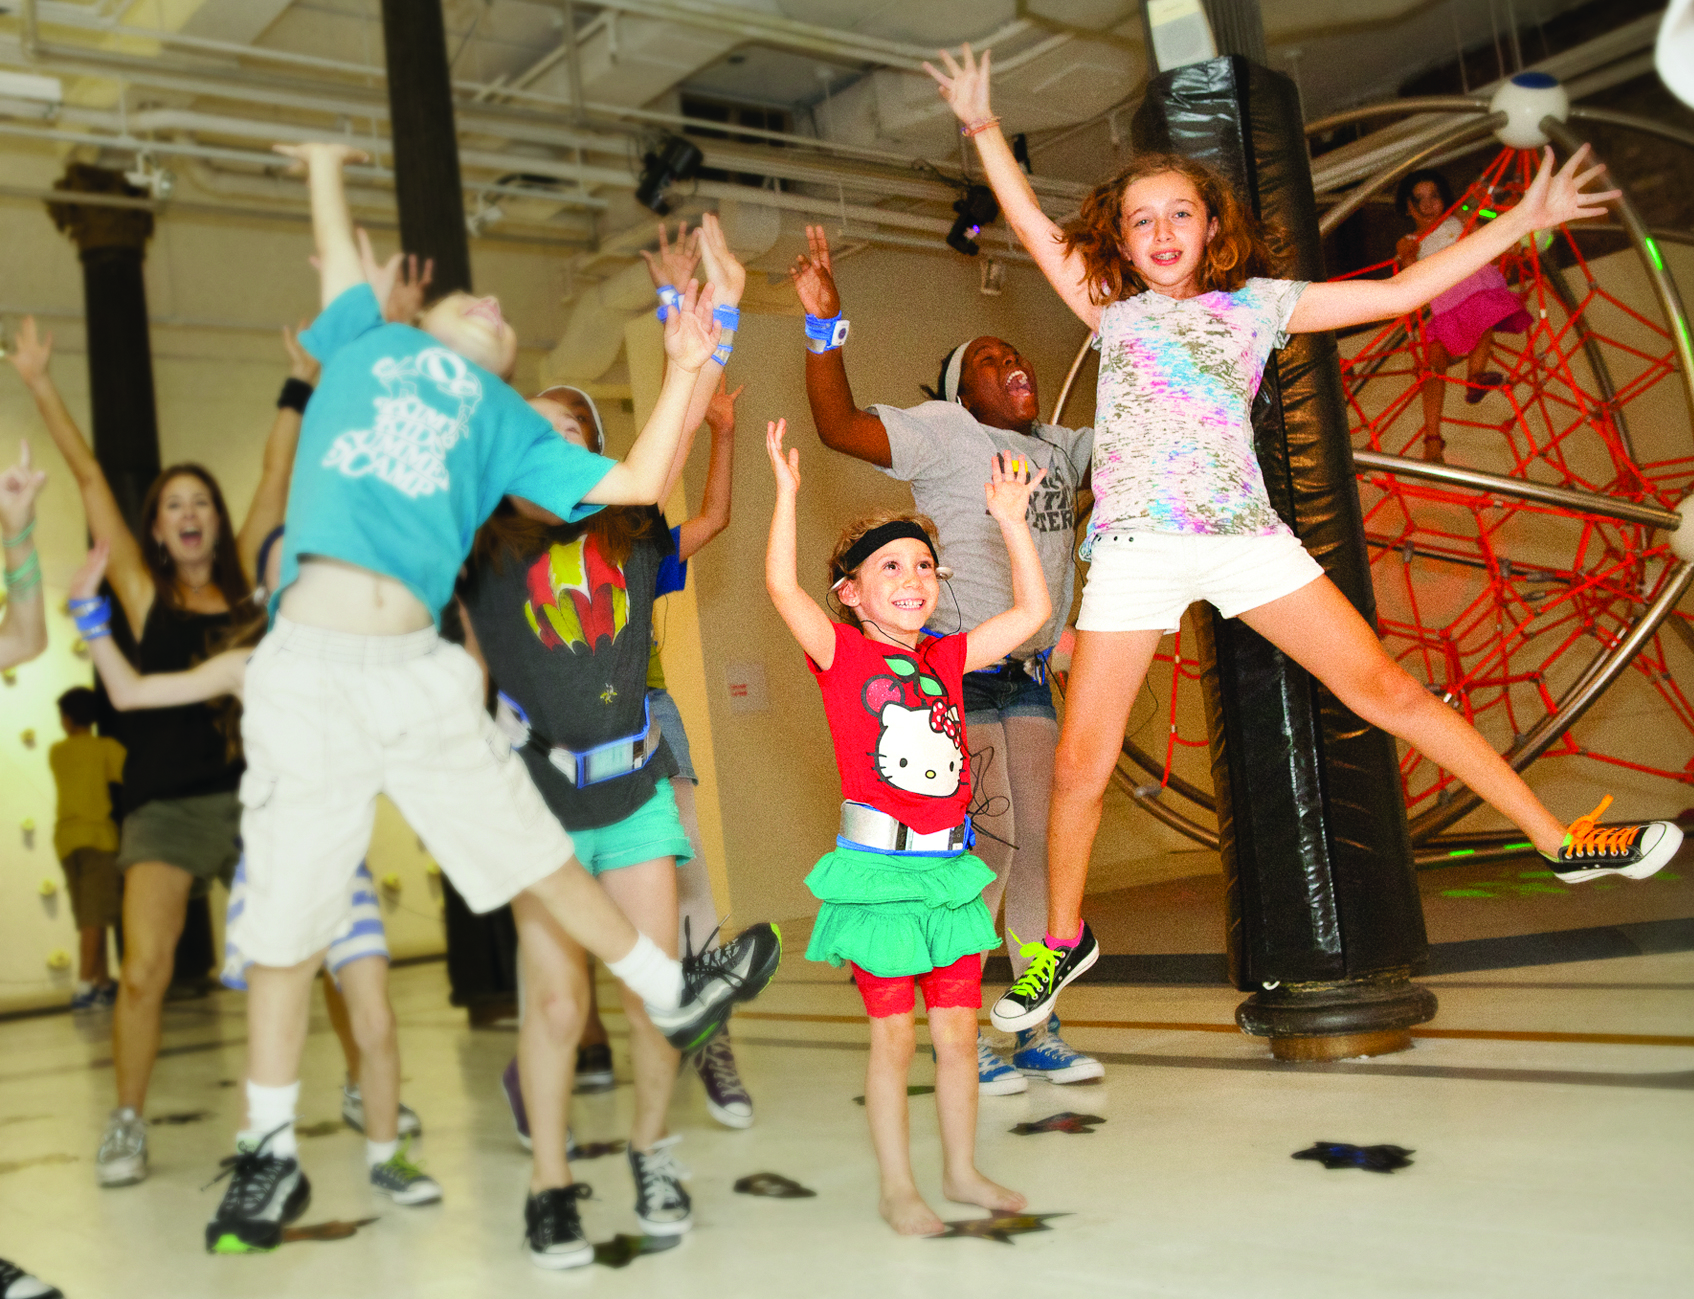 Kids use their bodies and brains to complete their fun mission at Exerblast.